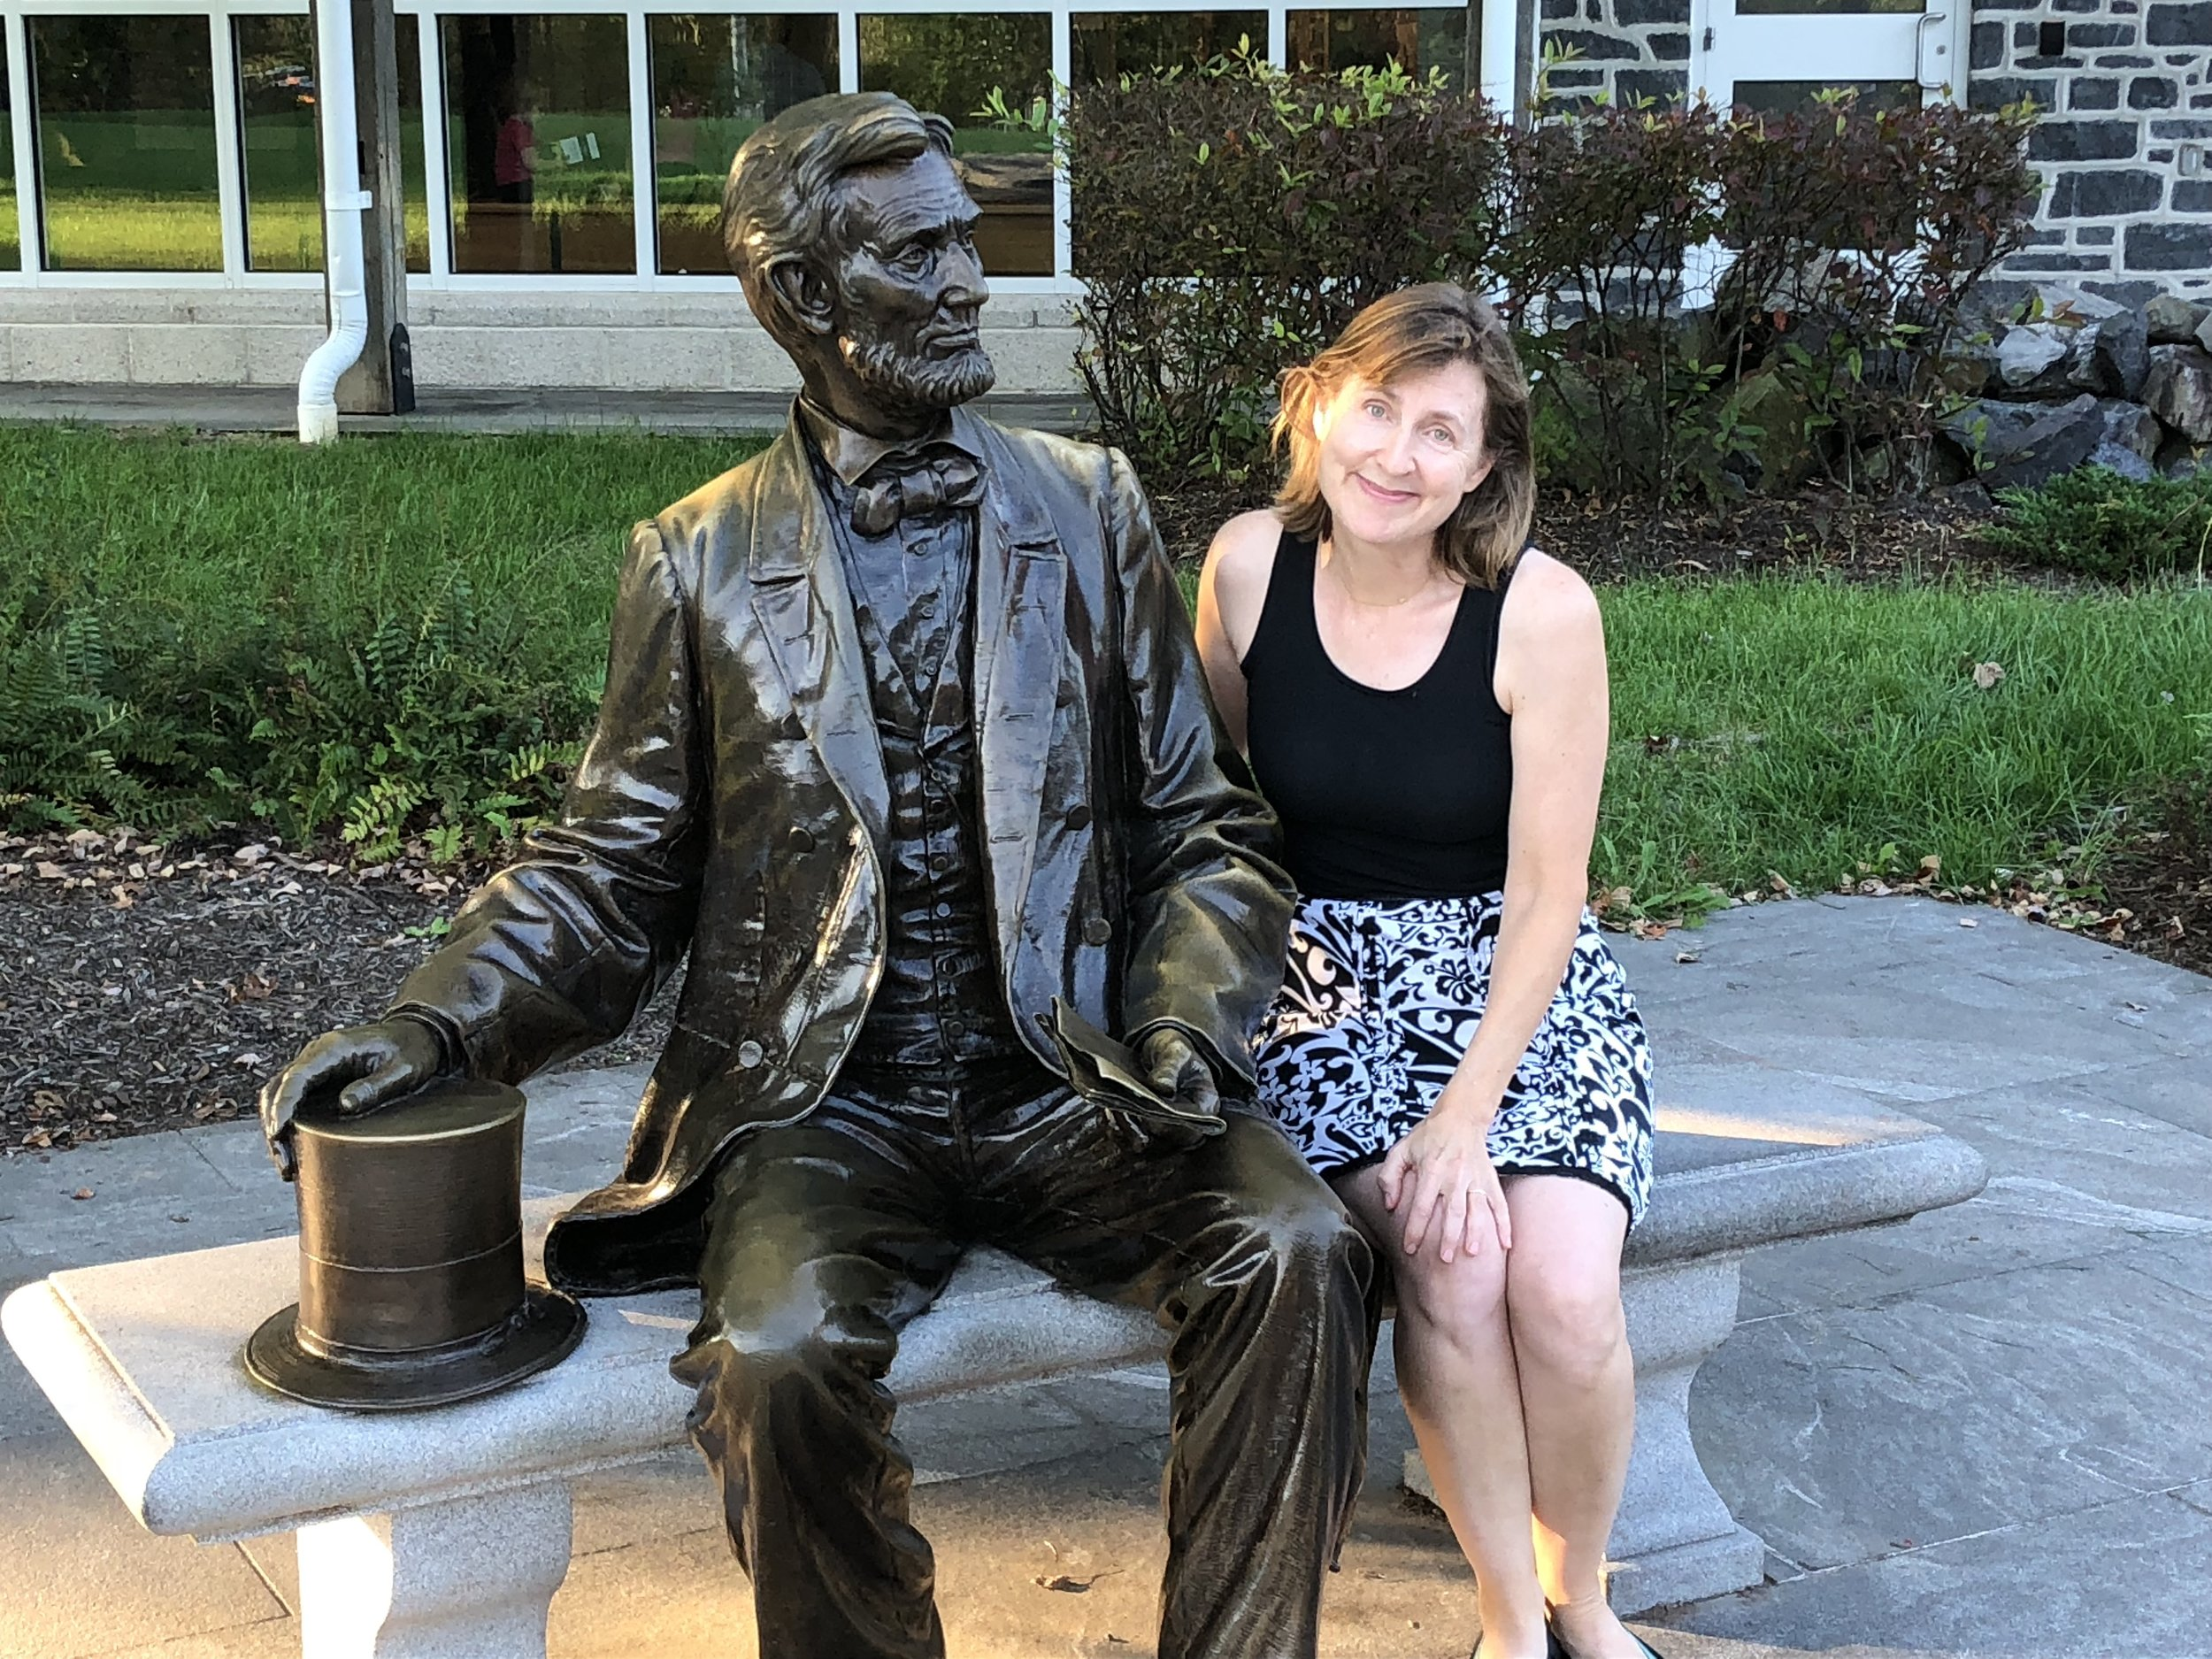 We moved on to Gettysburg, Pennsylvania where Kay got chummy with this fellow.